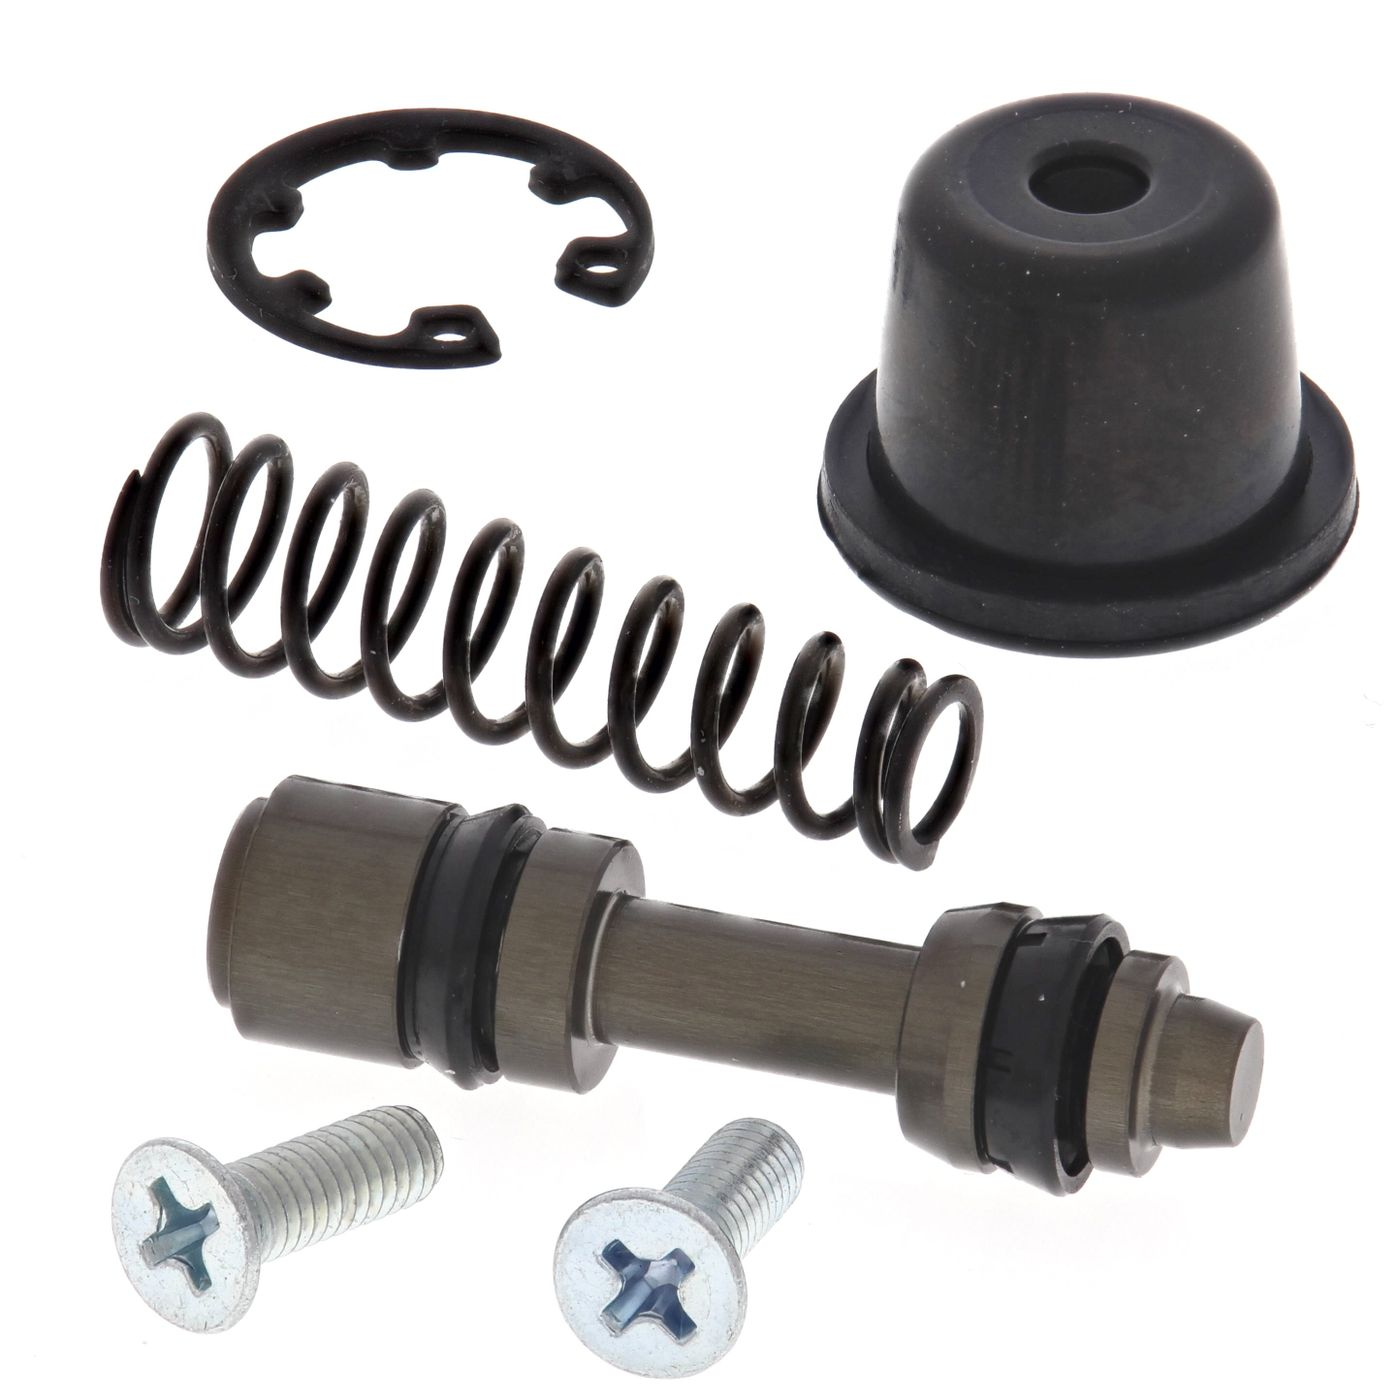 wrp clutch master cylinder kit - WRP184000 image